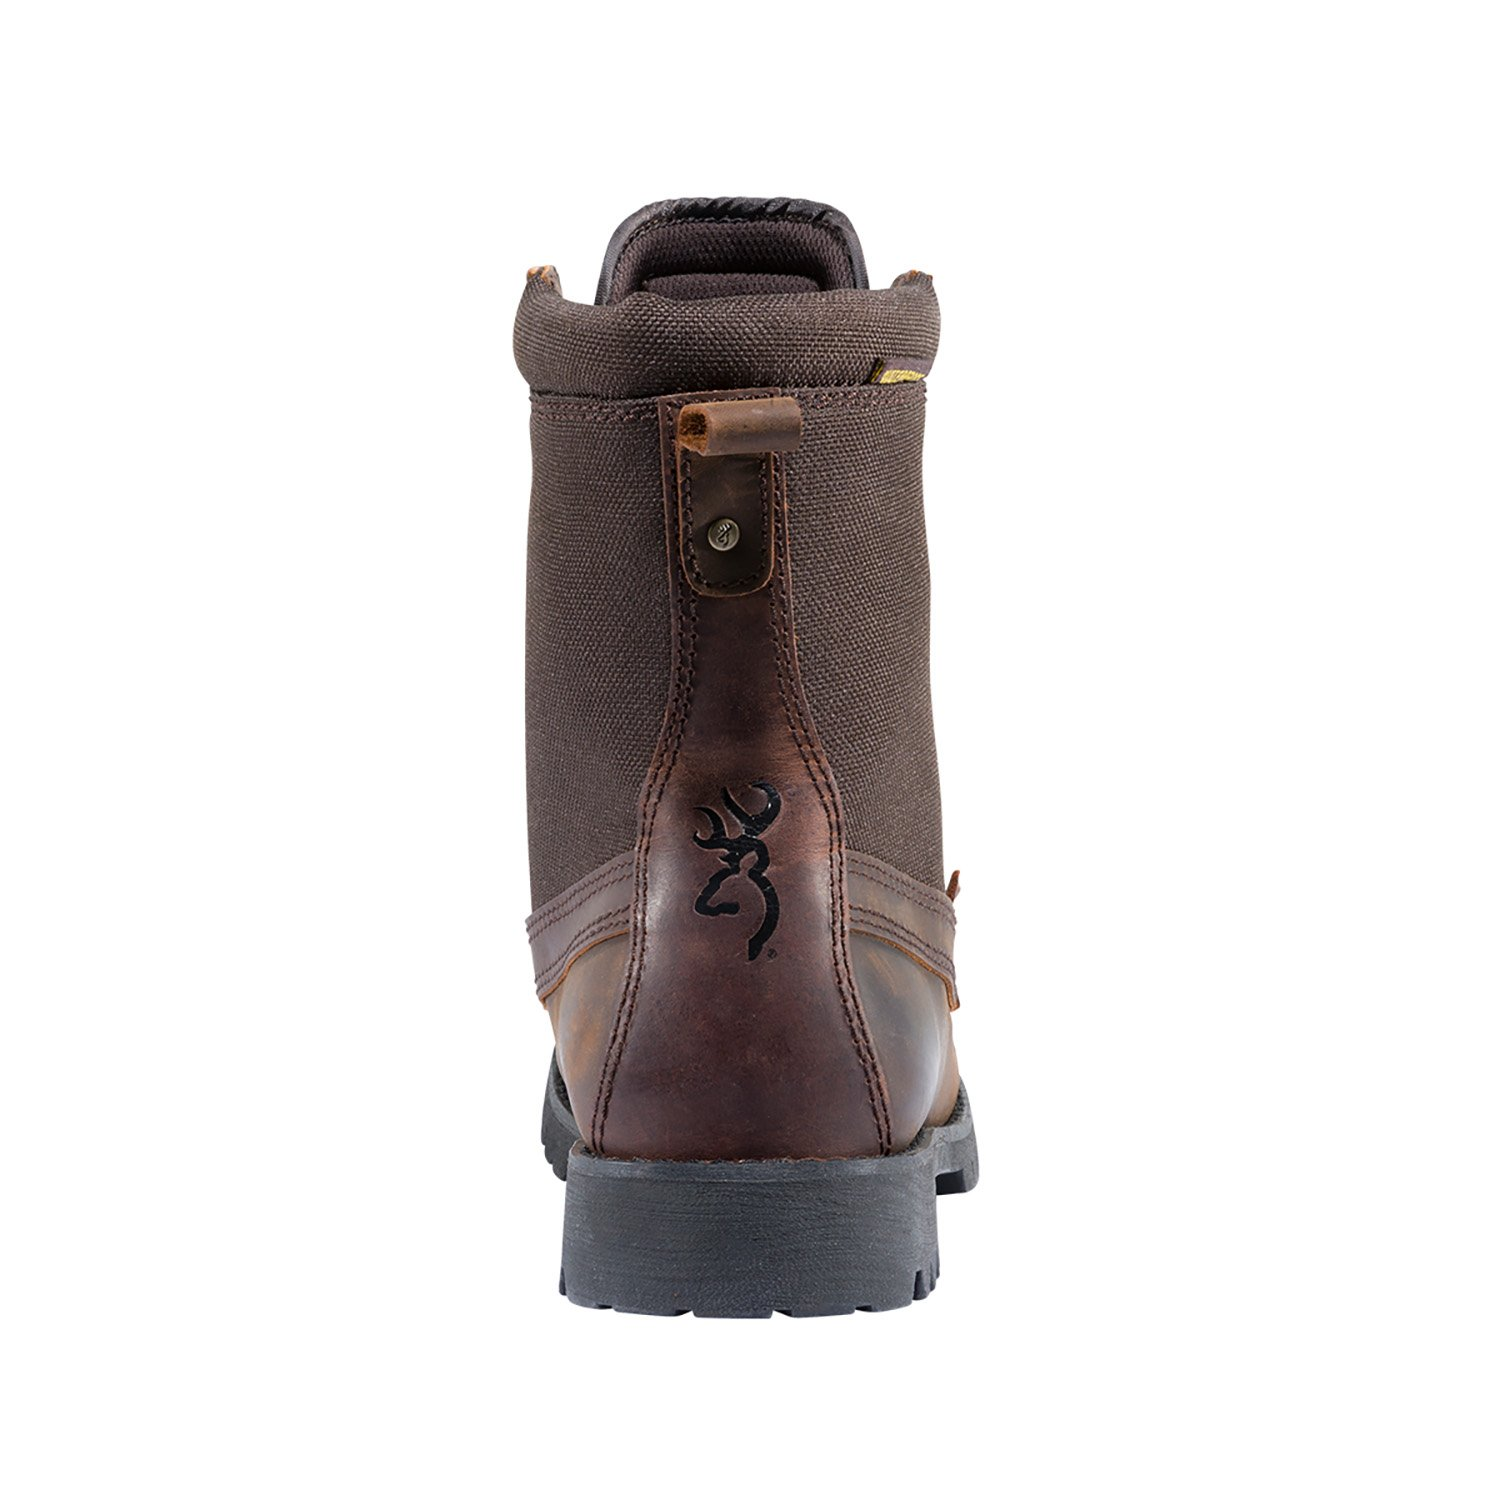 Browning Men's Featherweight Upland Boot, Bracken, Size 9.5 by Browning (Image #2)